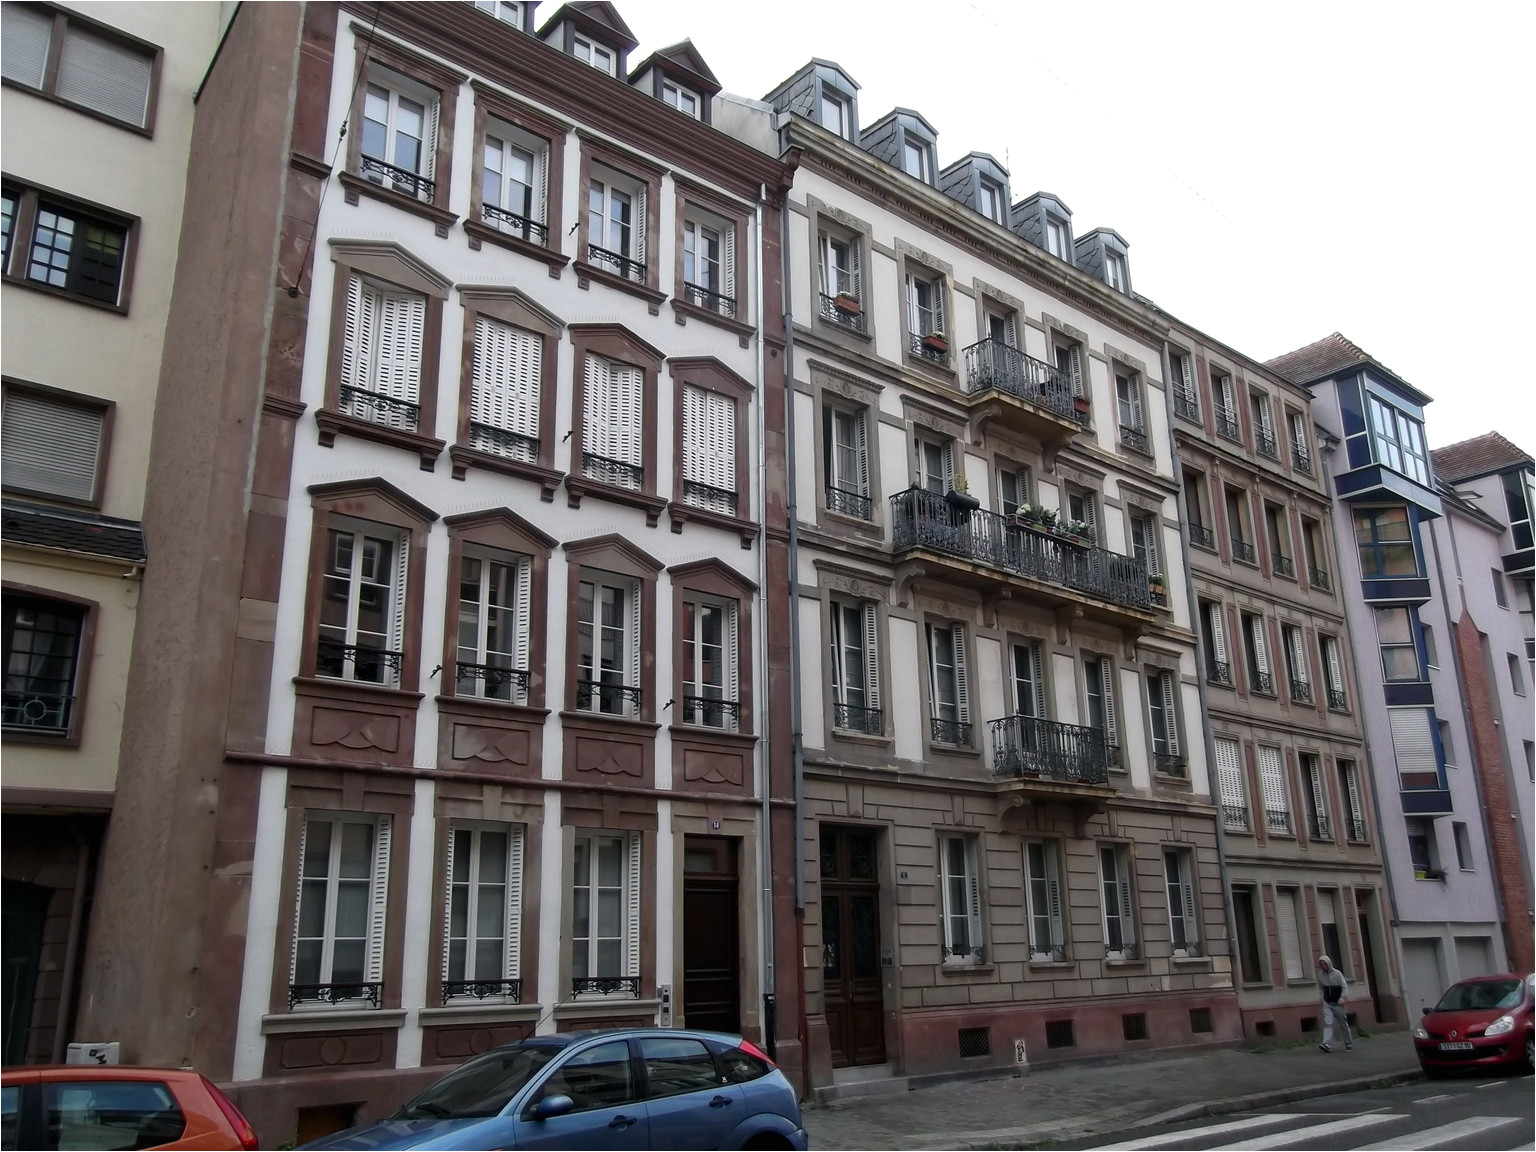 rue des balayeurs na 12 x 11 blondel o 1137 puis section 35 parcelle 20 cadastre